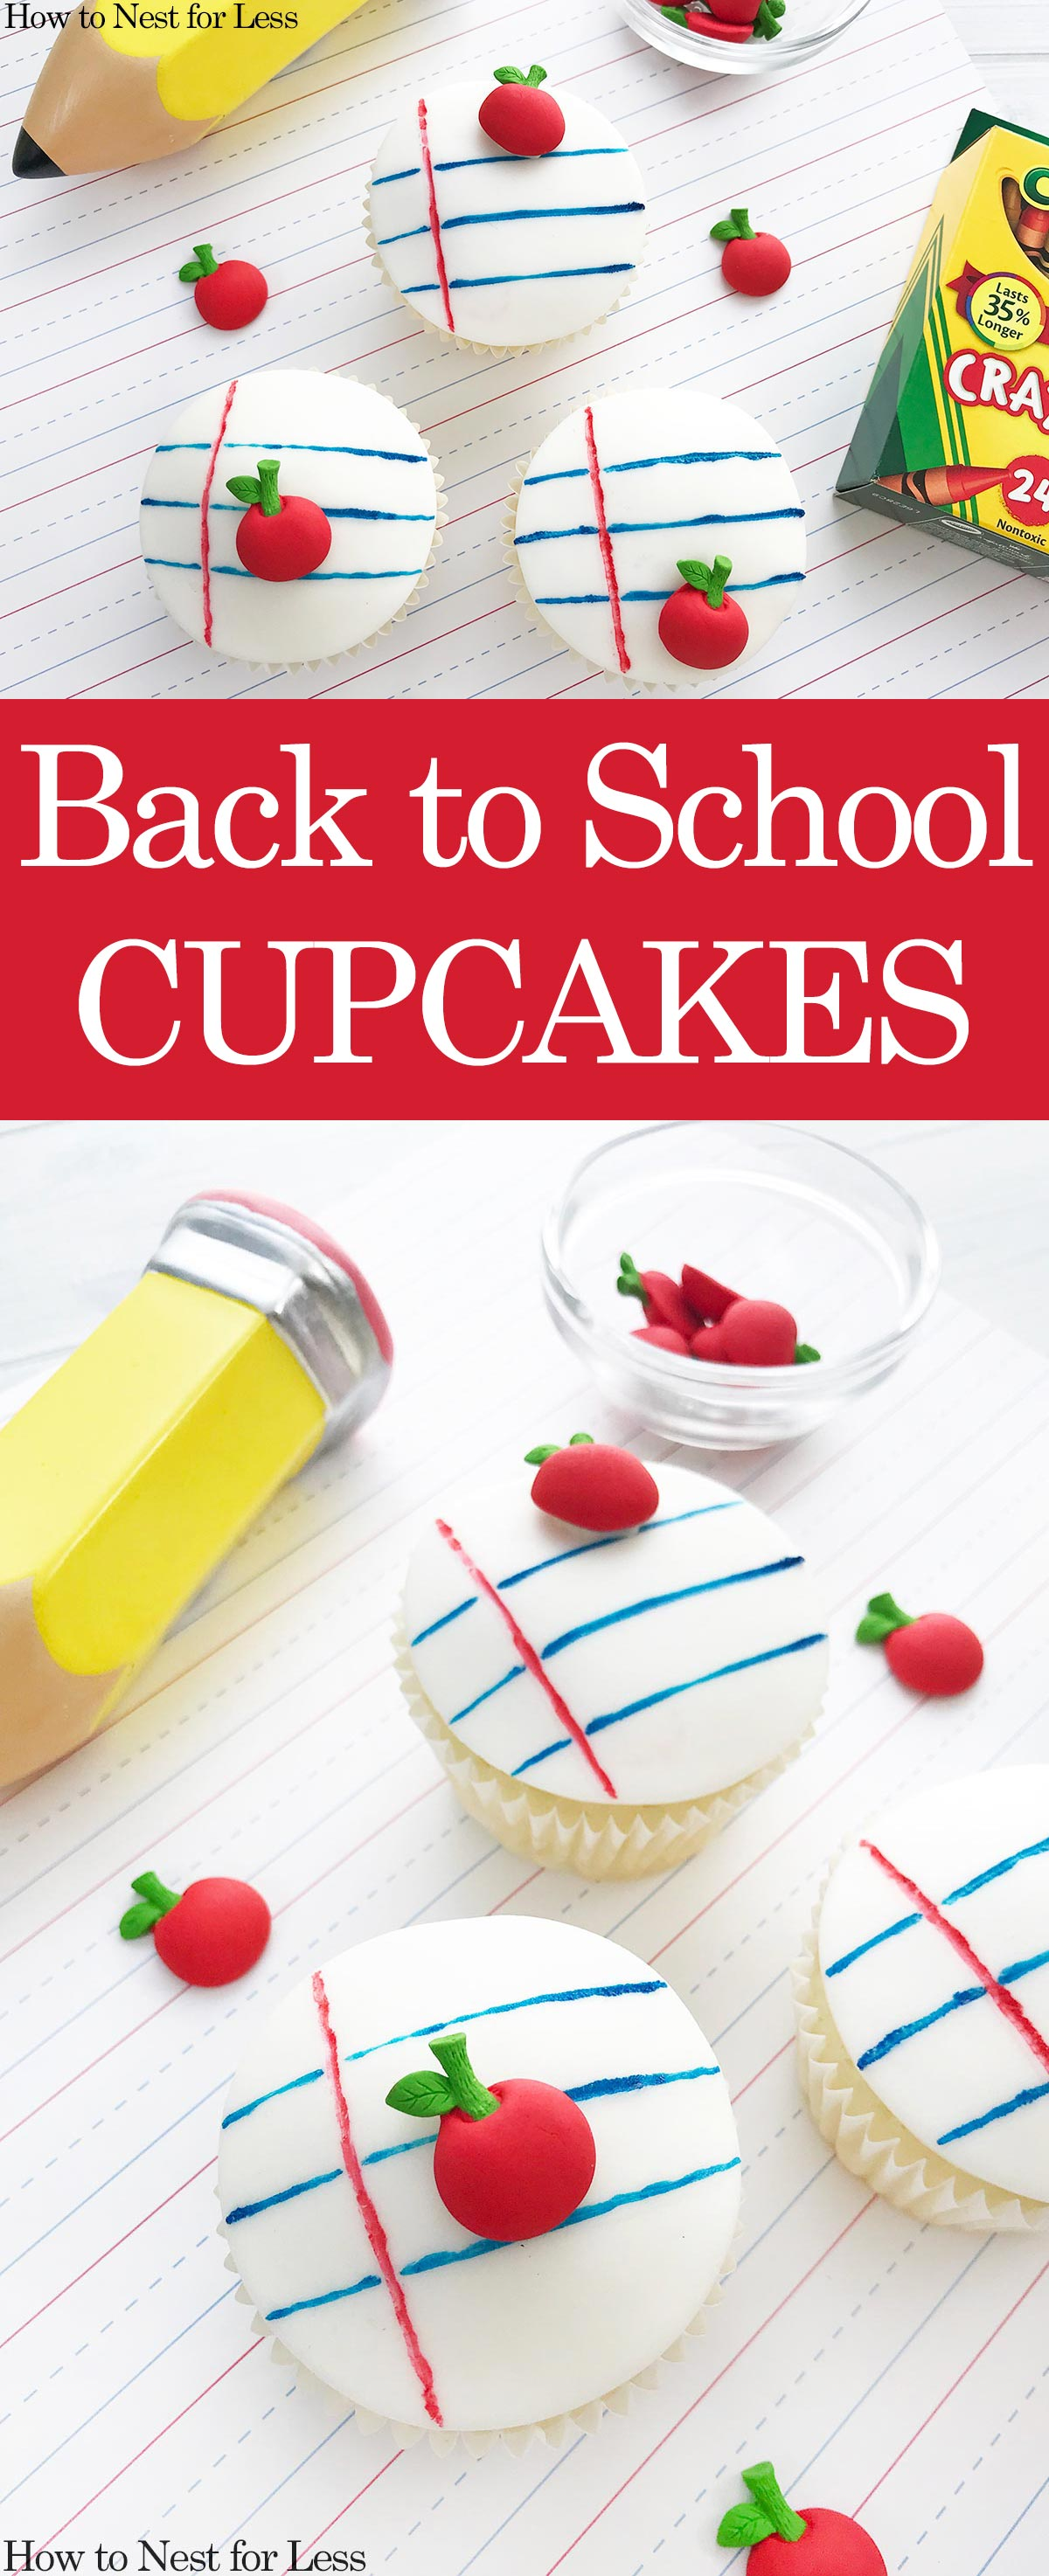 Back to School Notebook Cupcakes poster.